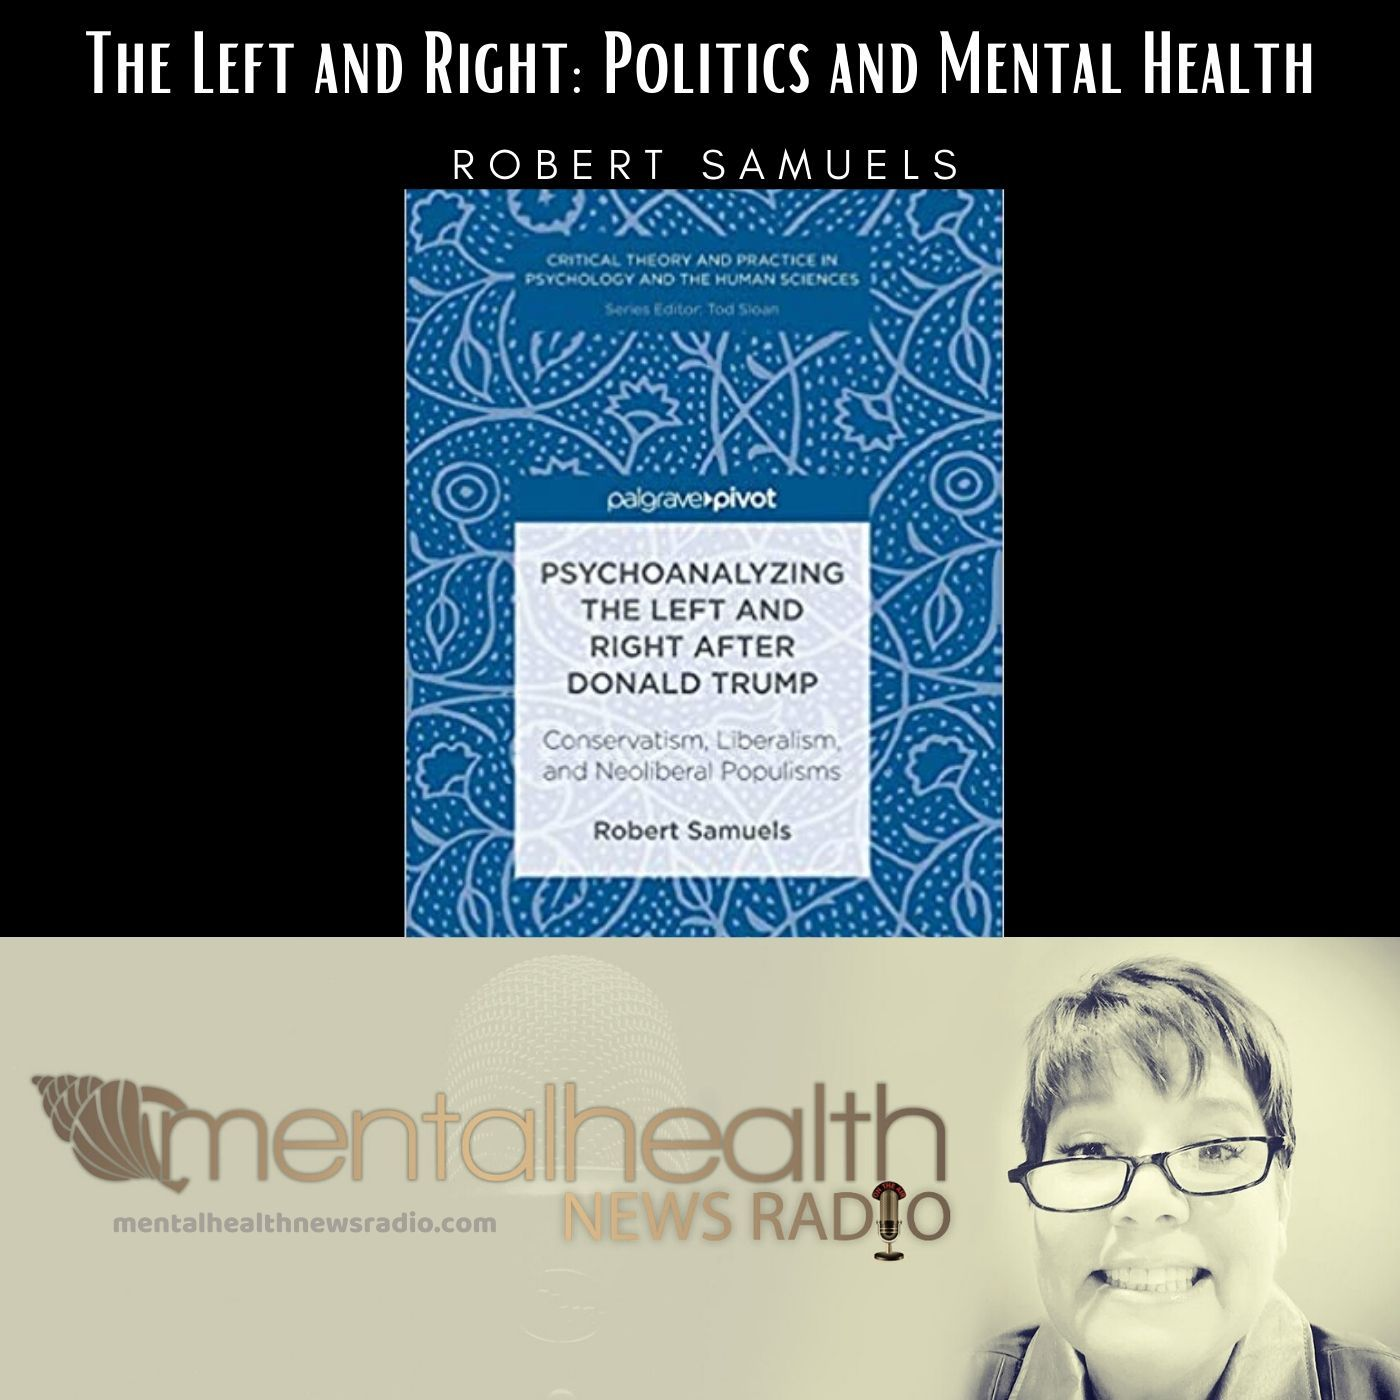 Mental Health News Radio - The Left and Right: Politics and Mental Health